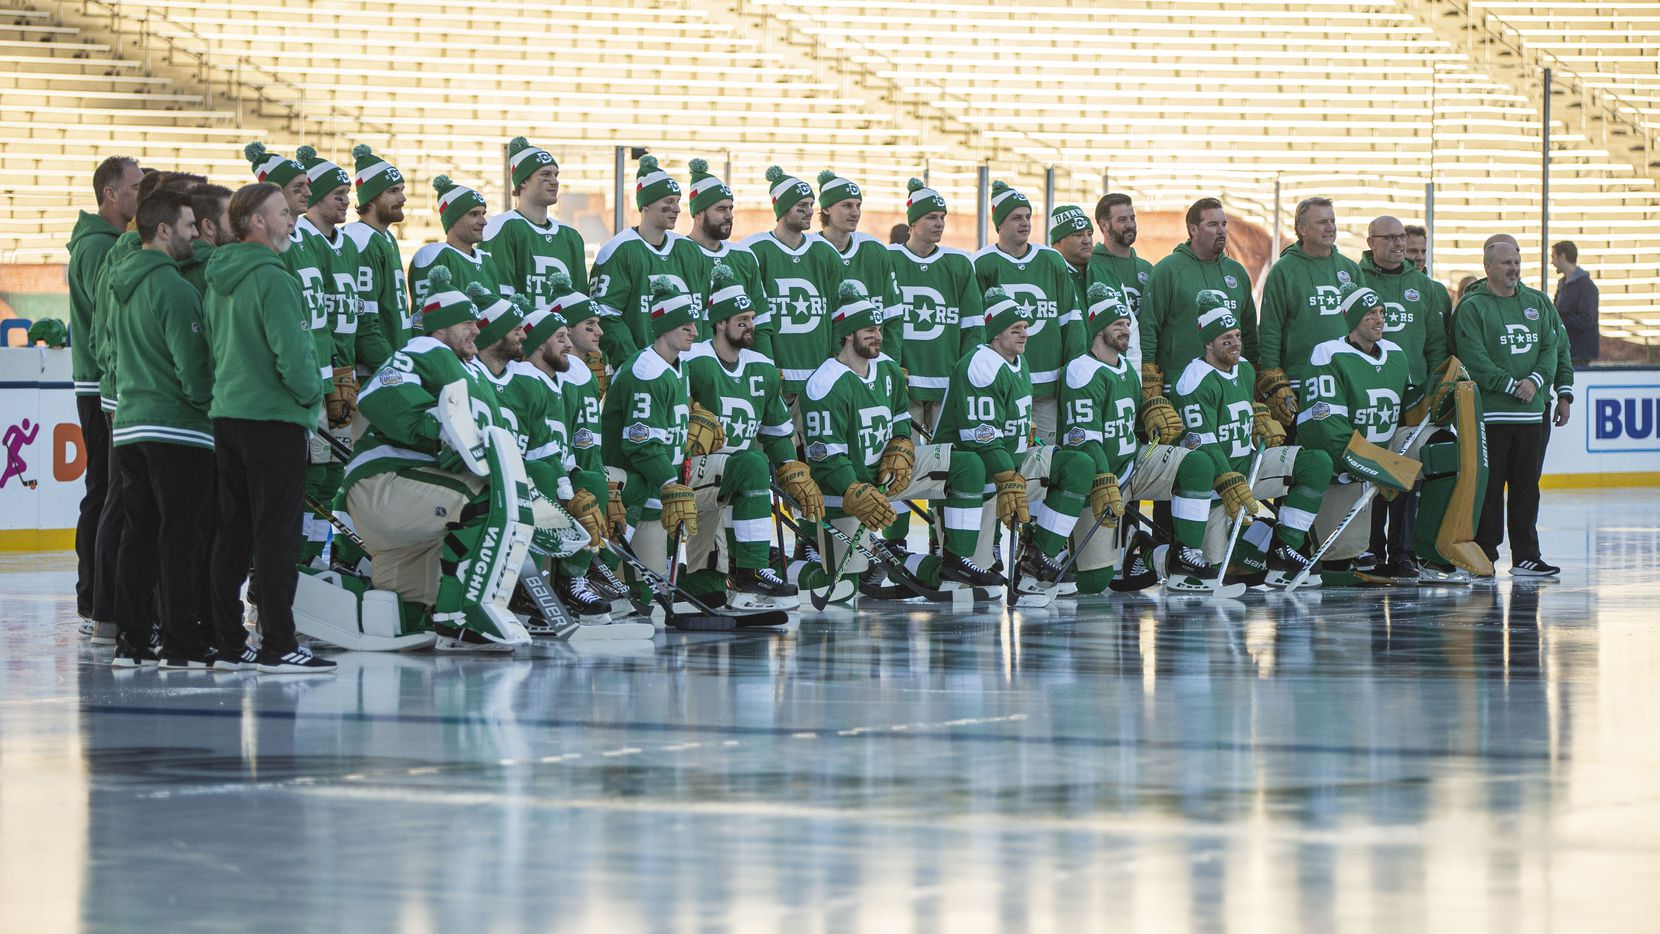 Dallas Stars players, coaches and personal pose for a group photo before practice leading up to the Winter Classic match against the Nashville Predators at the Cotton Bowl in Fair Park, Tuesday, December 31, 2019.